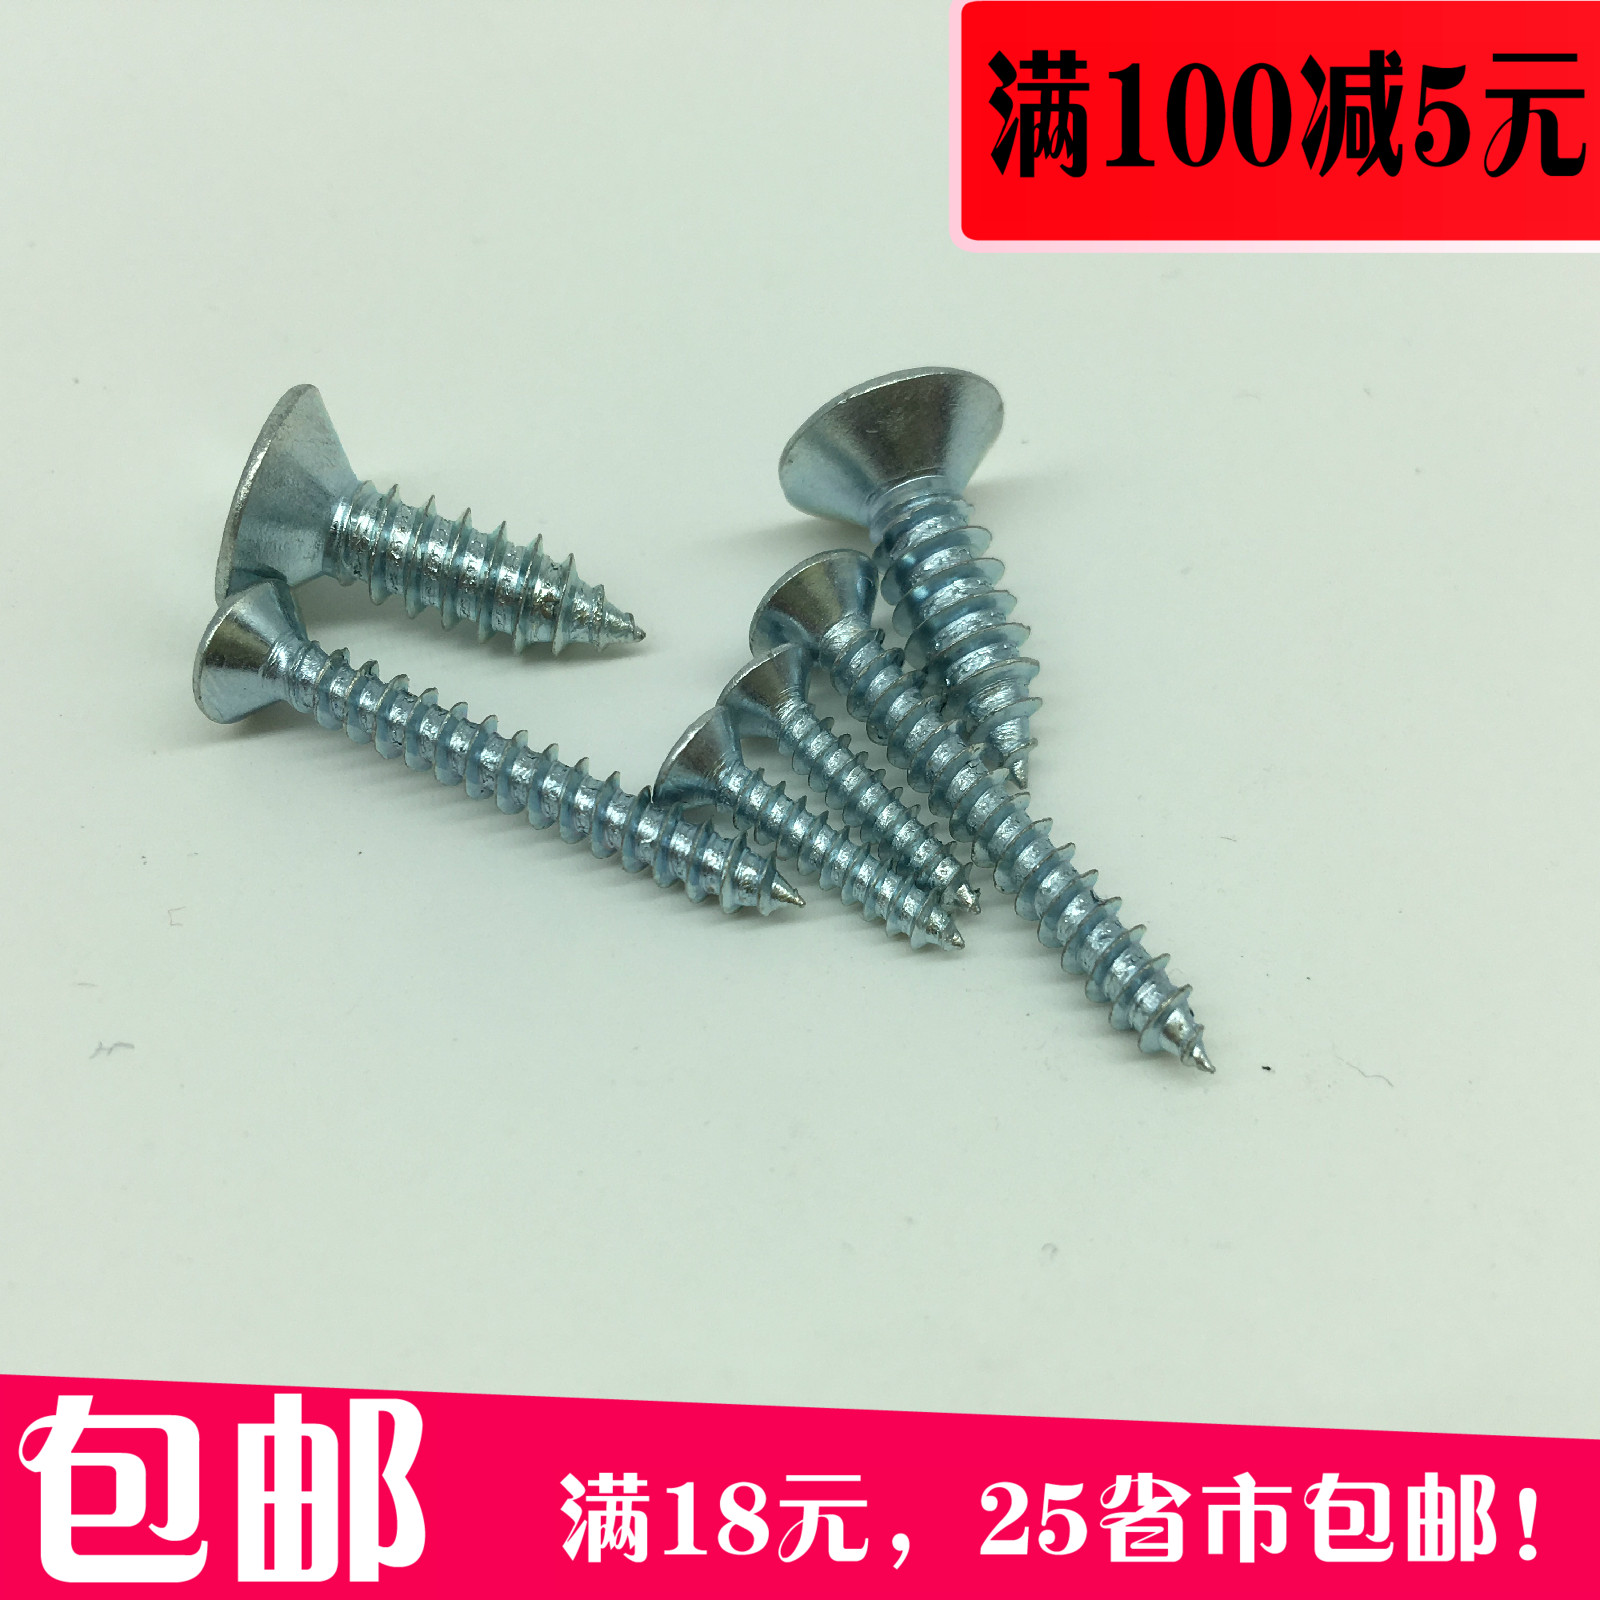 Shanghai production of high strength flat head self tapping screws st4.8 phillips countersunk head self tapping screws st3.9 st4.2